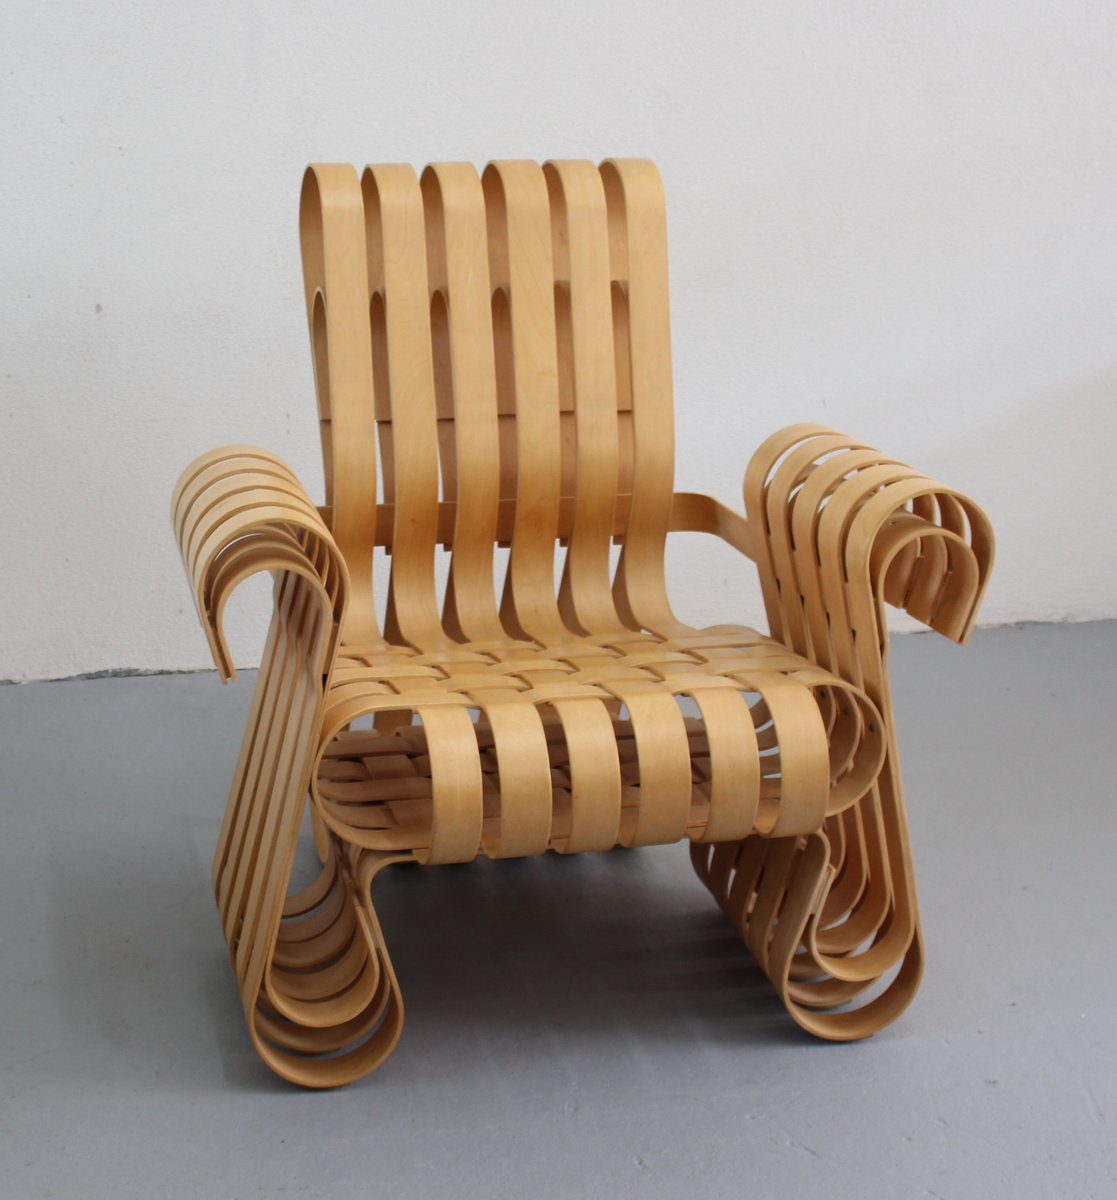 Power Play Chair By Frank O Gehry For Knoll International